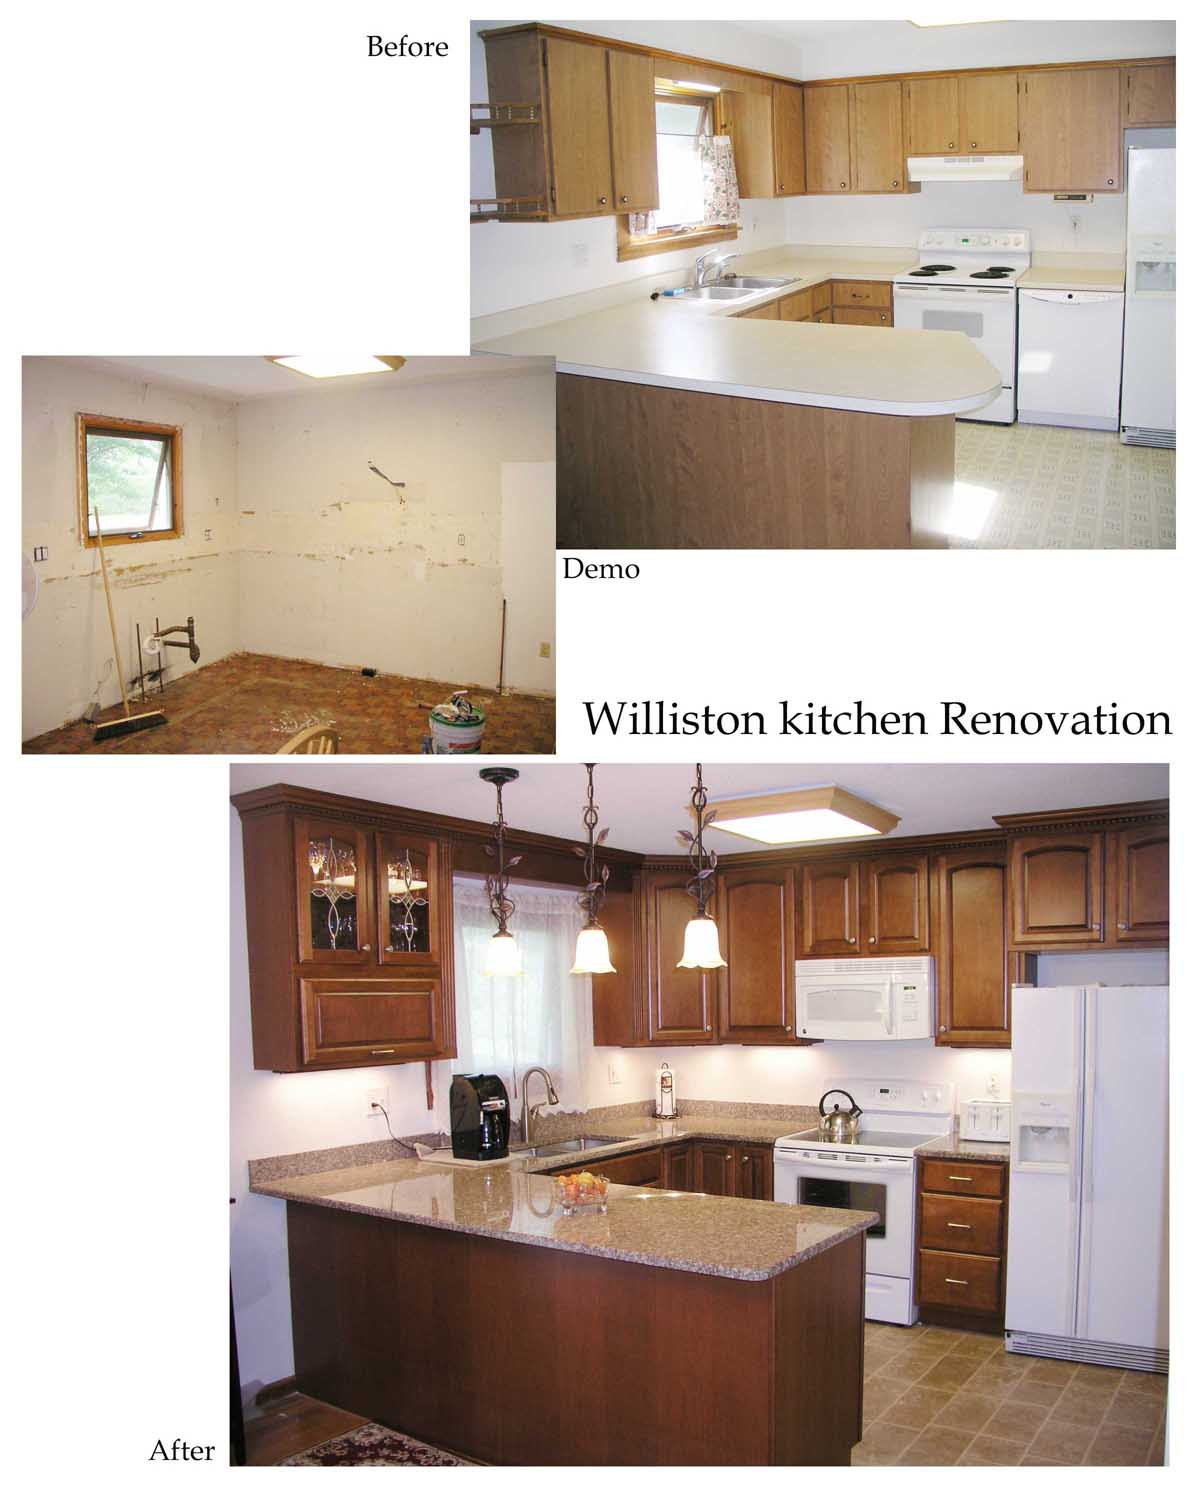 willistonkitchen.jpg